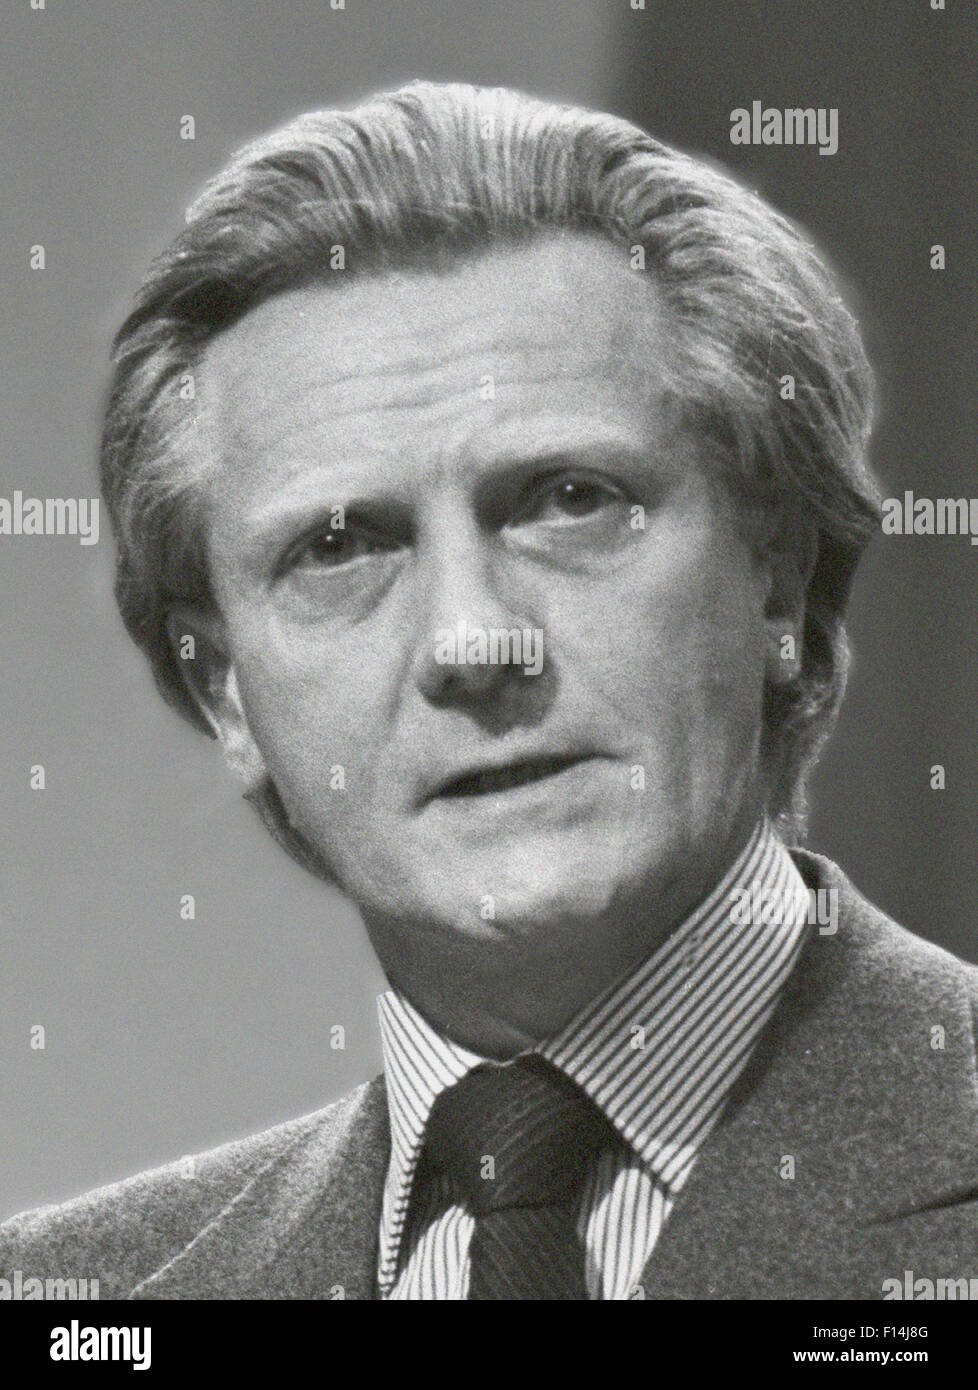 Michael Ray Dibdin Heseltine, Baron Heseltine, CH, PC (born 21 March 1933) is a British businessman, Conservative - Stock Image